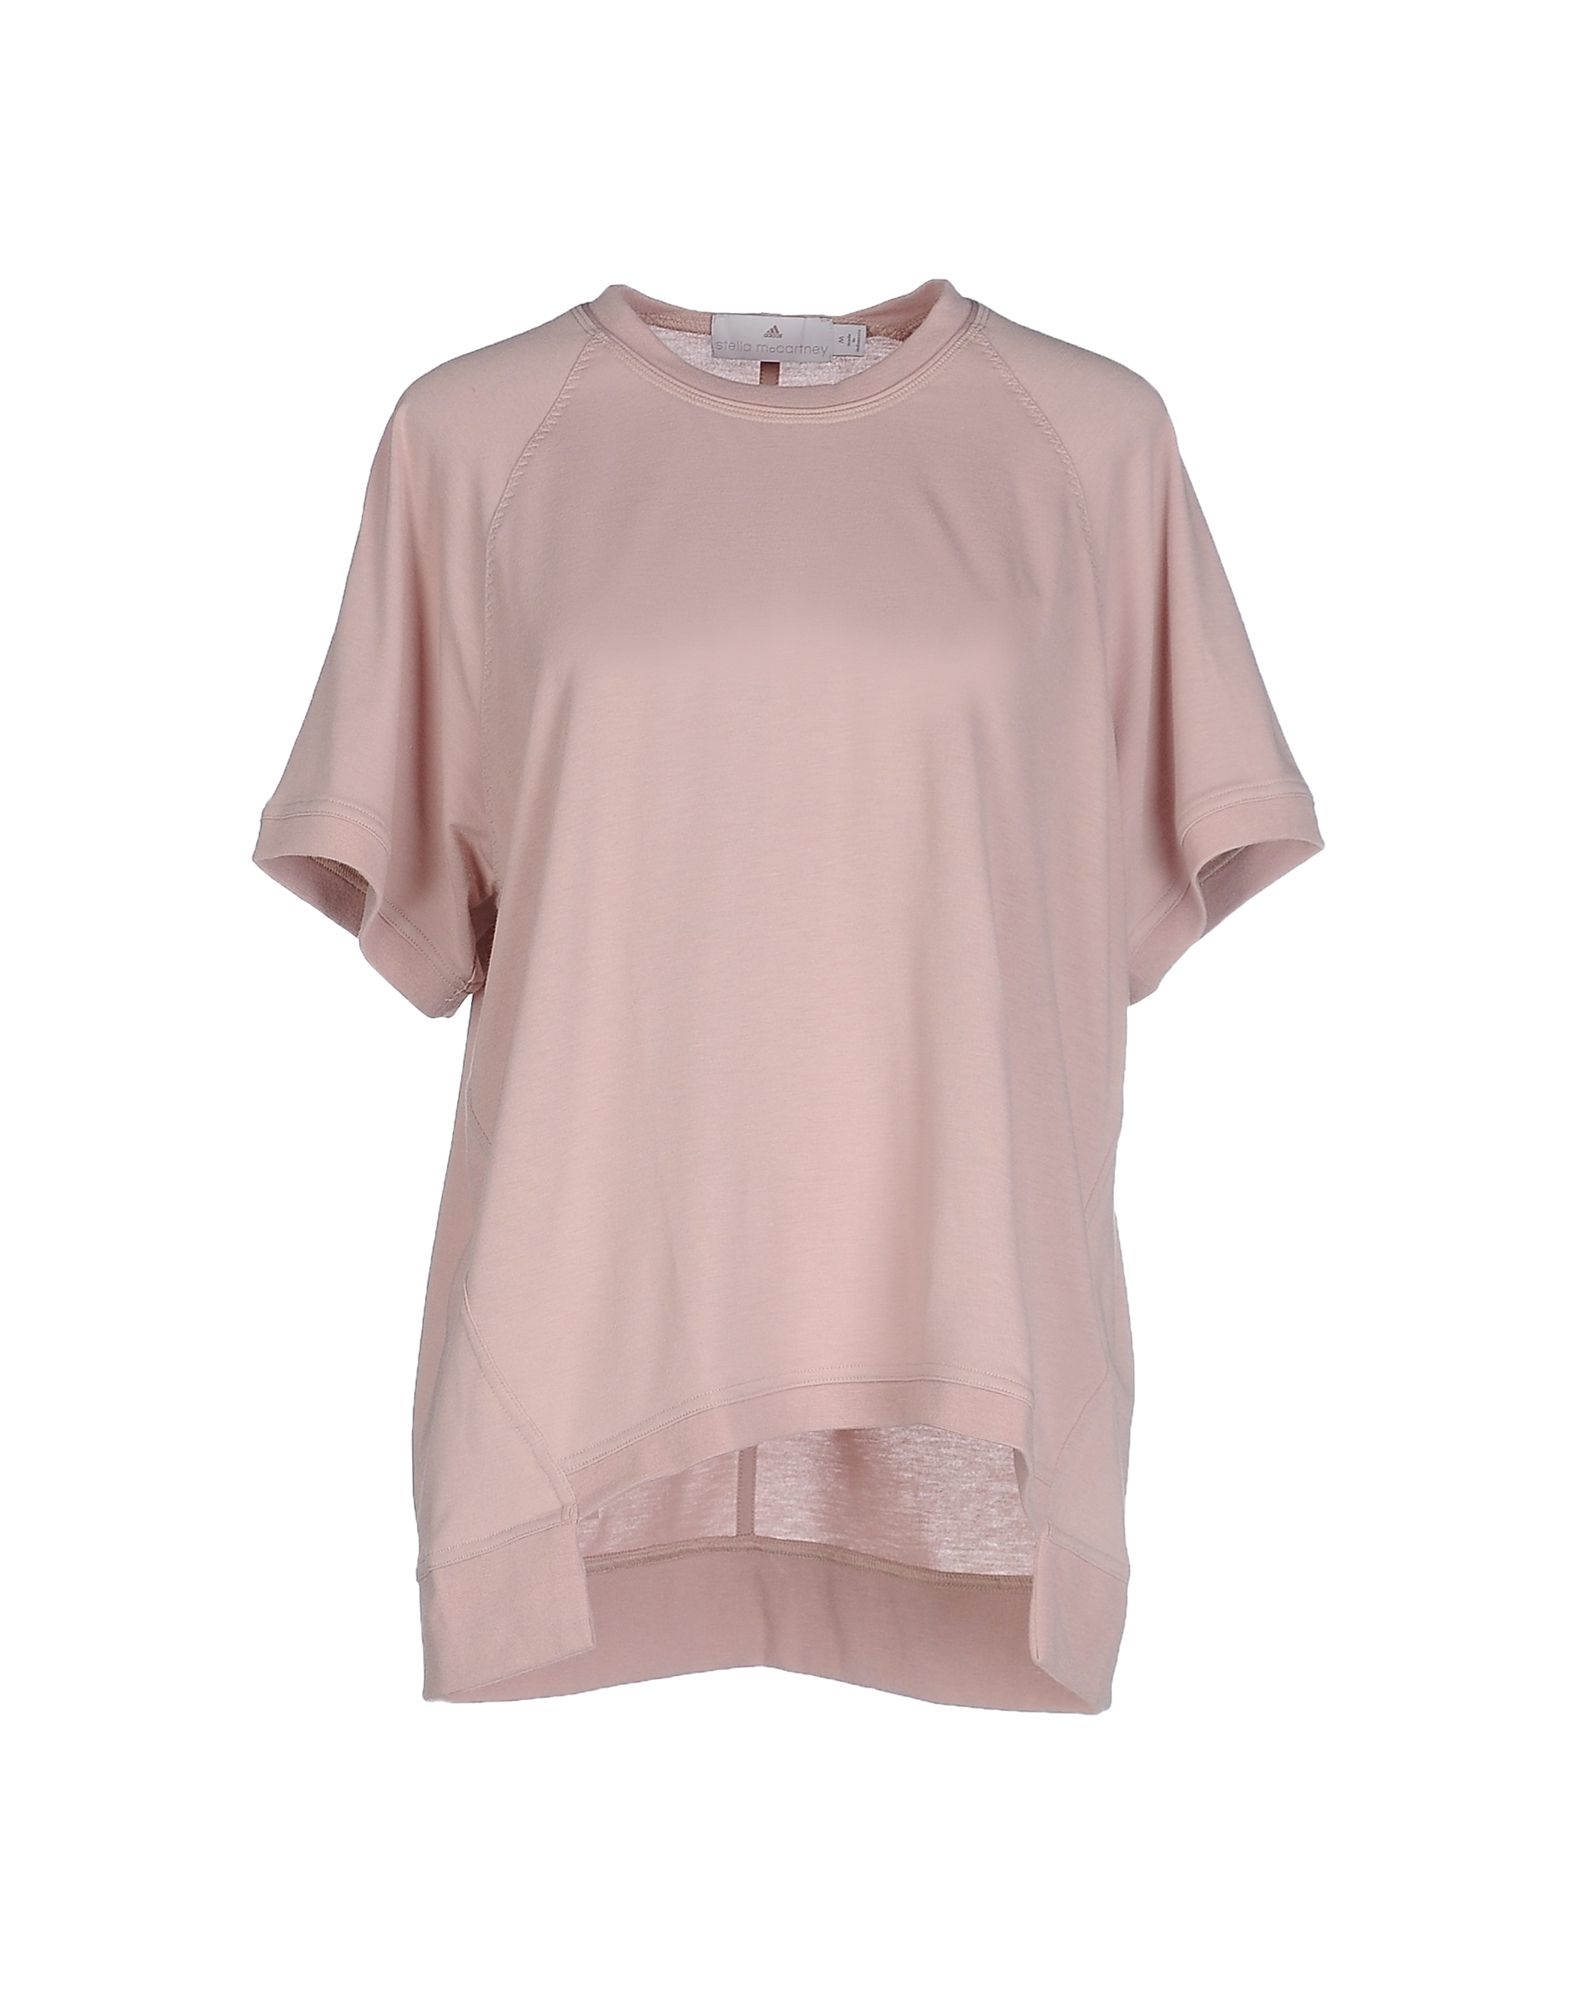 Adidas by stella mccartney t shirt in natural lyst for Stella mccartney t shirt